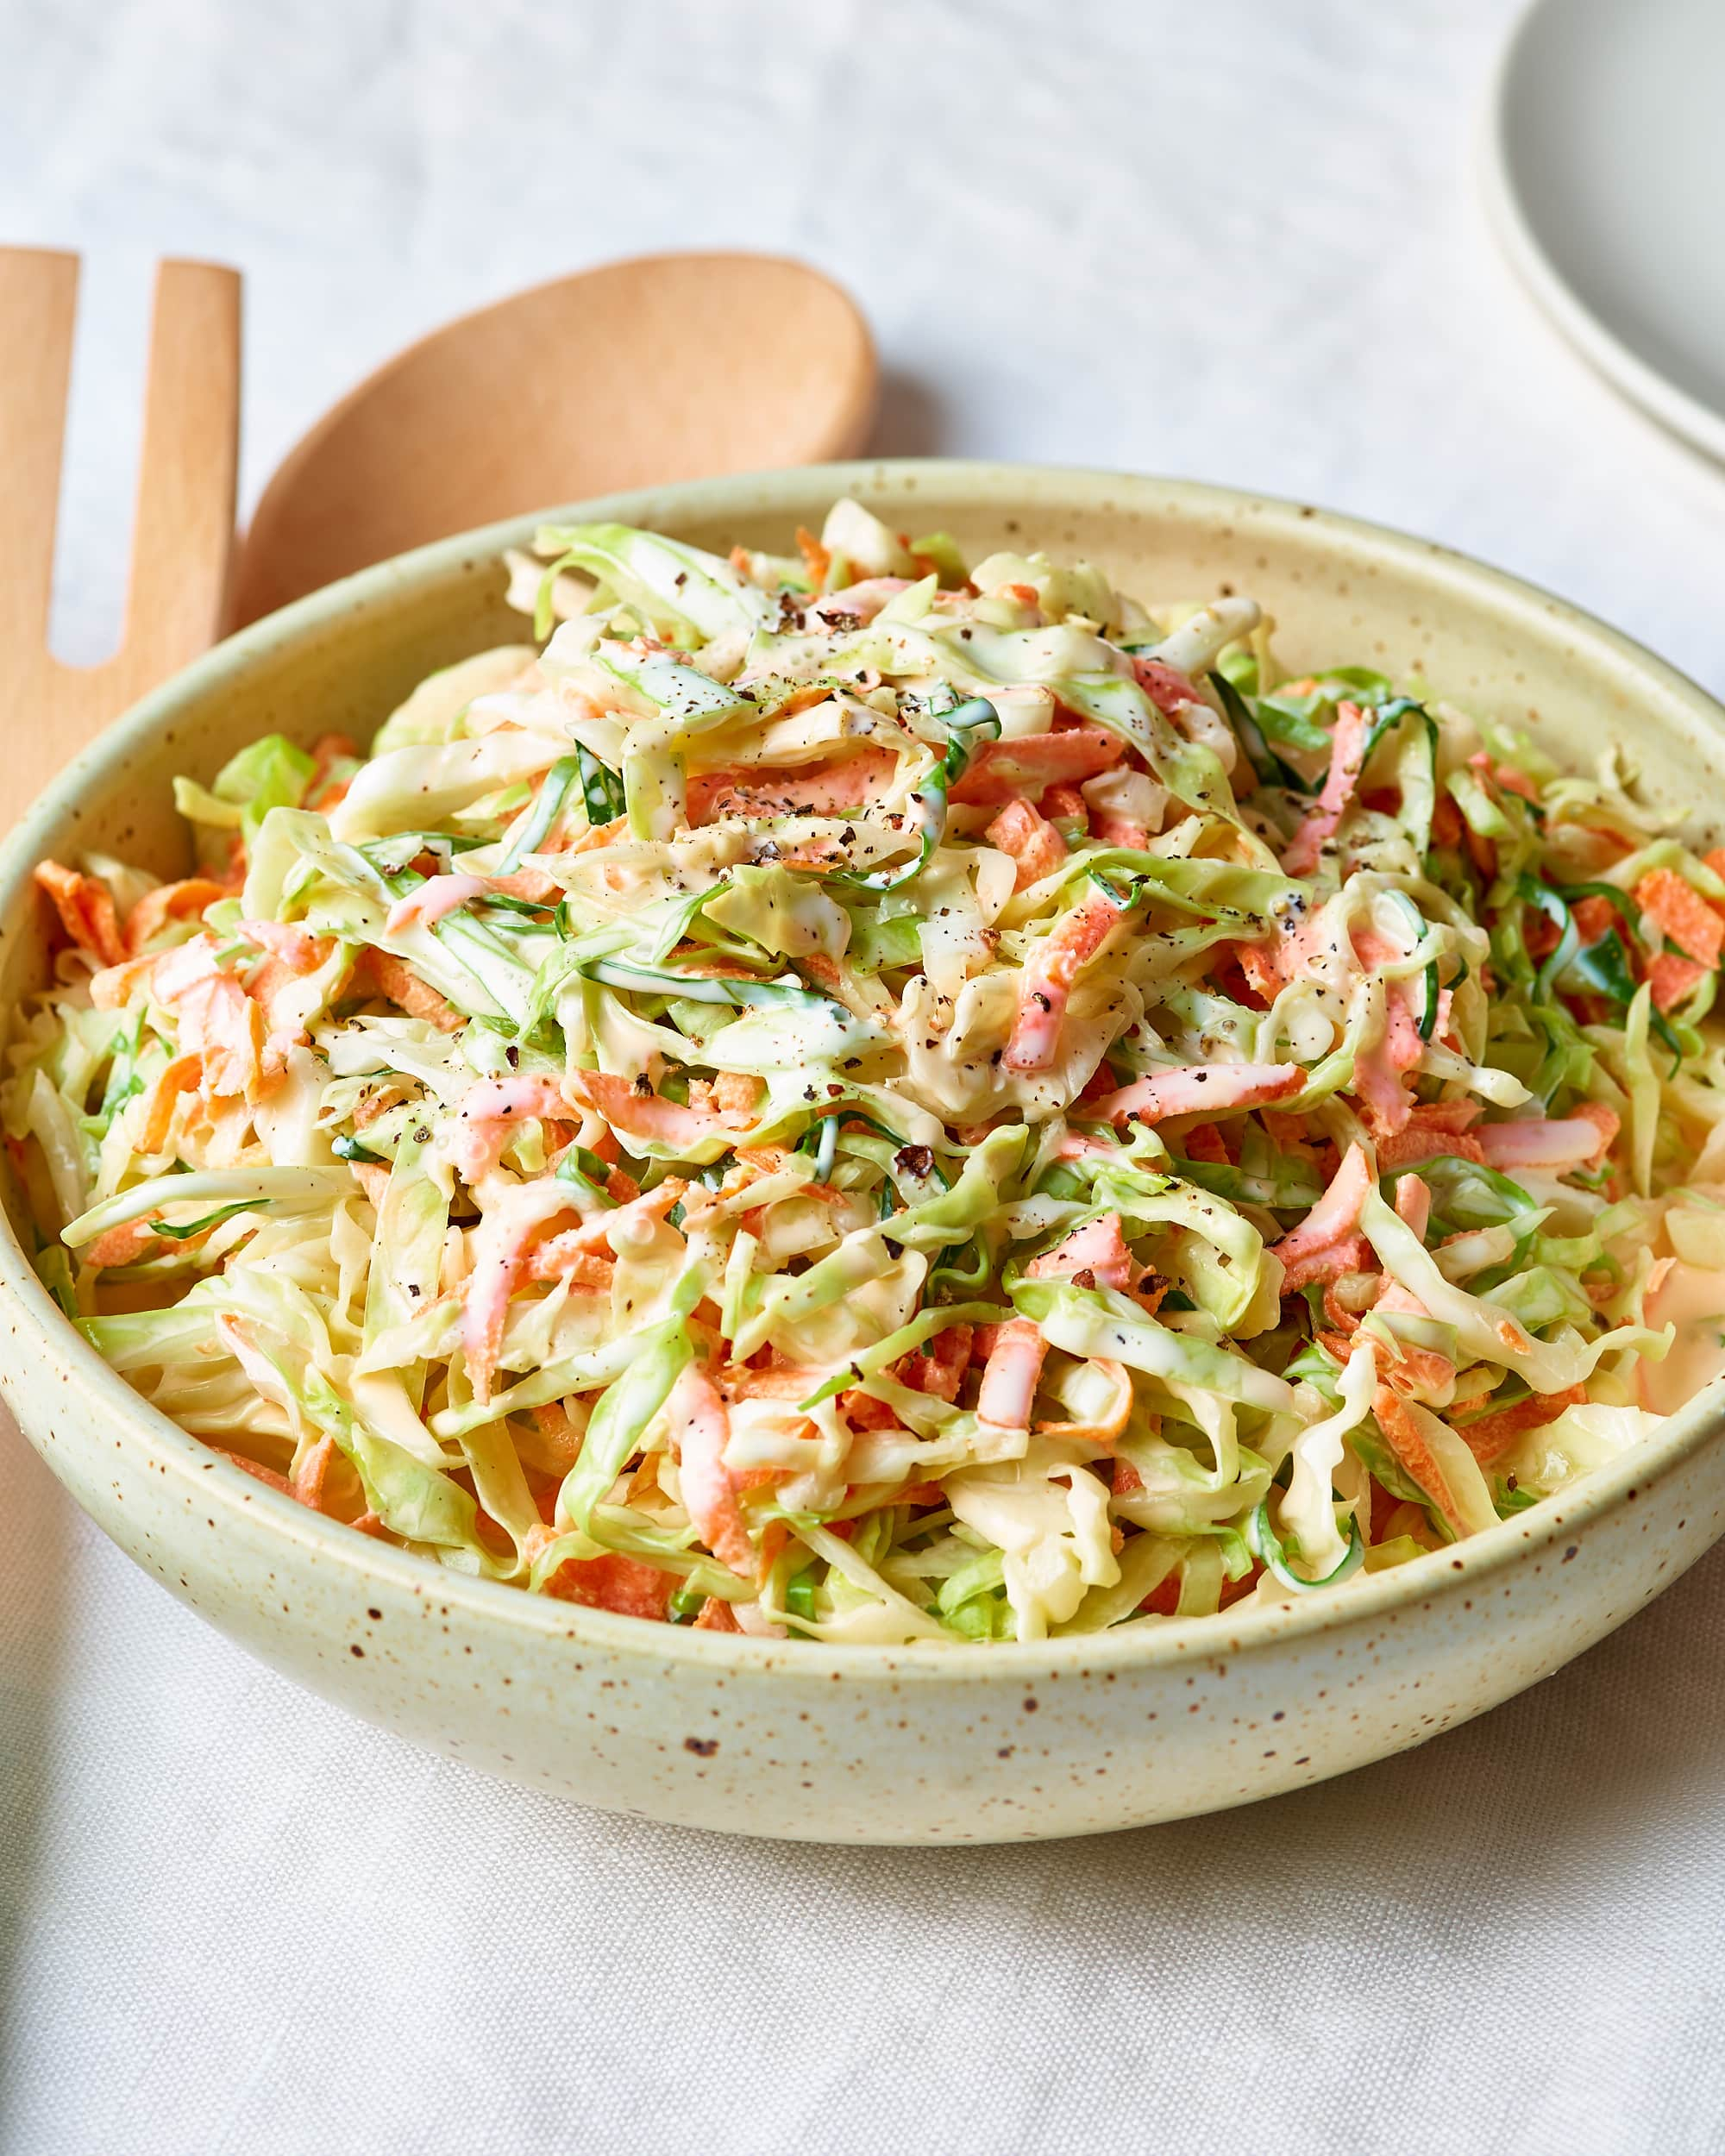 10 Easy Cole Slaw Recipes And Other Cabbage Recipes: How To Make Classic Creamy Coleslaw - Recipe